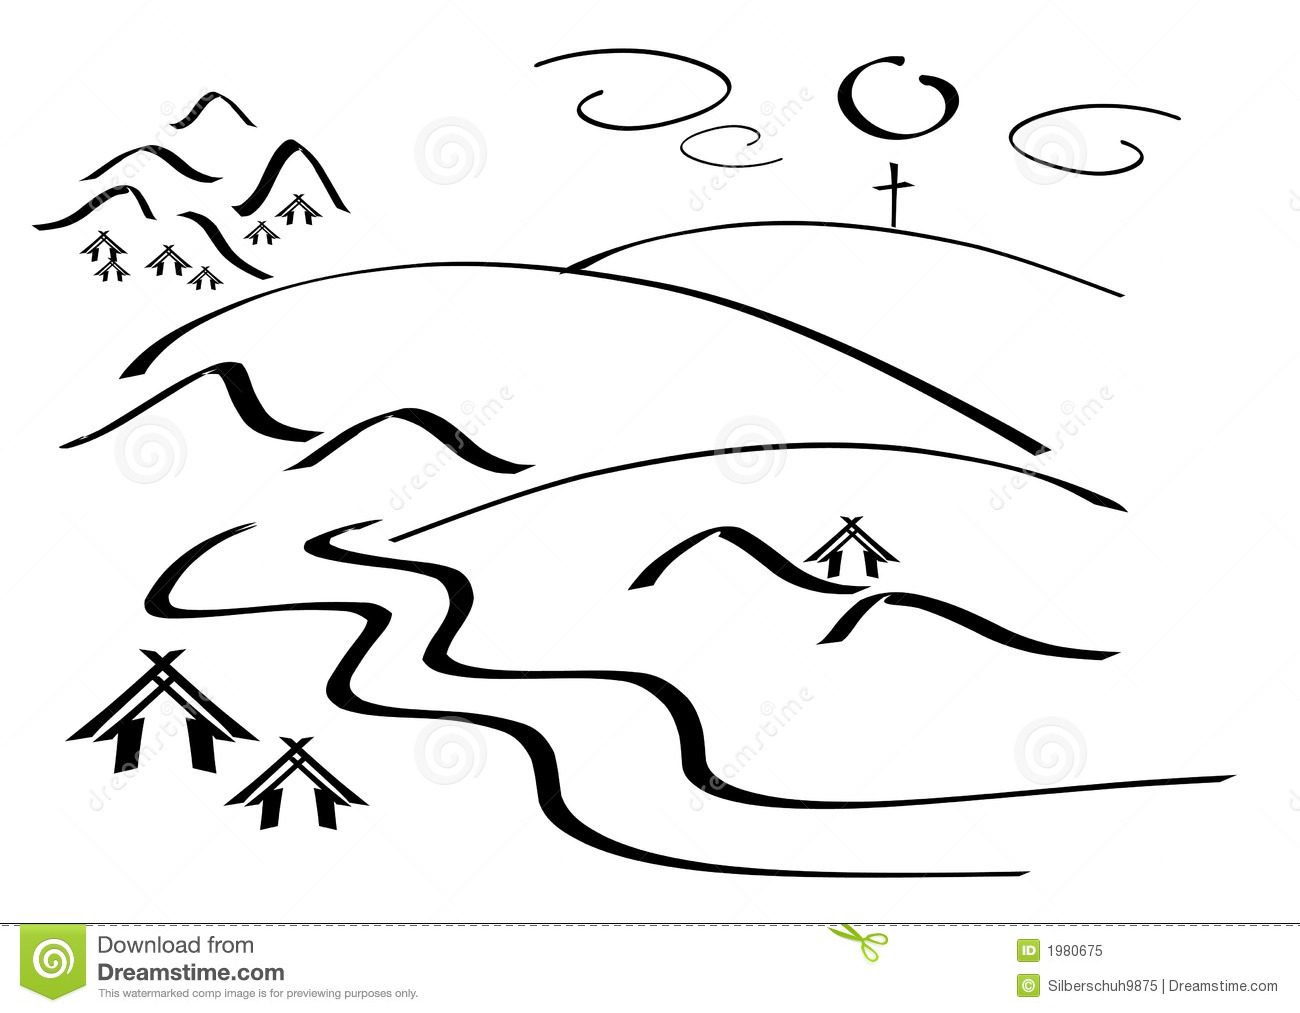 Calligraphy drawing of a simple mountain landscape Mountain Landscape Outline